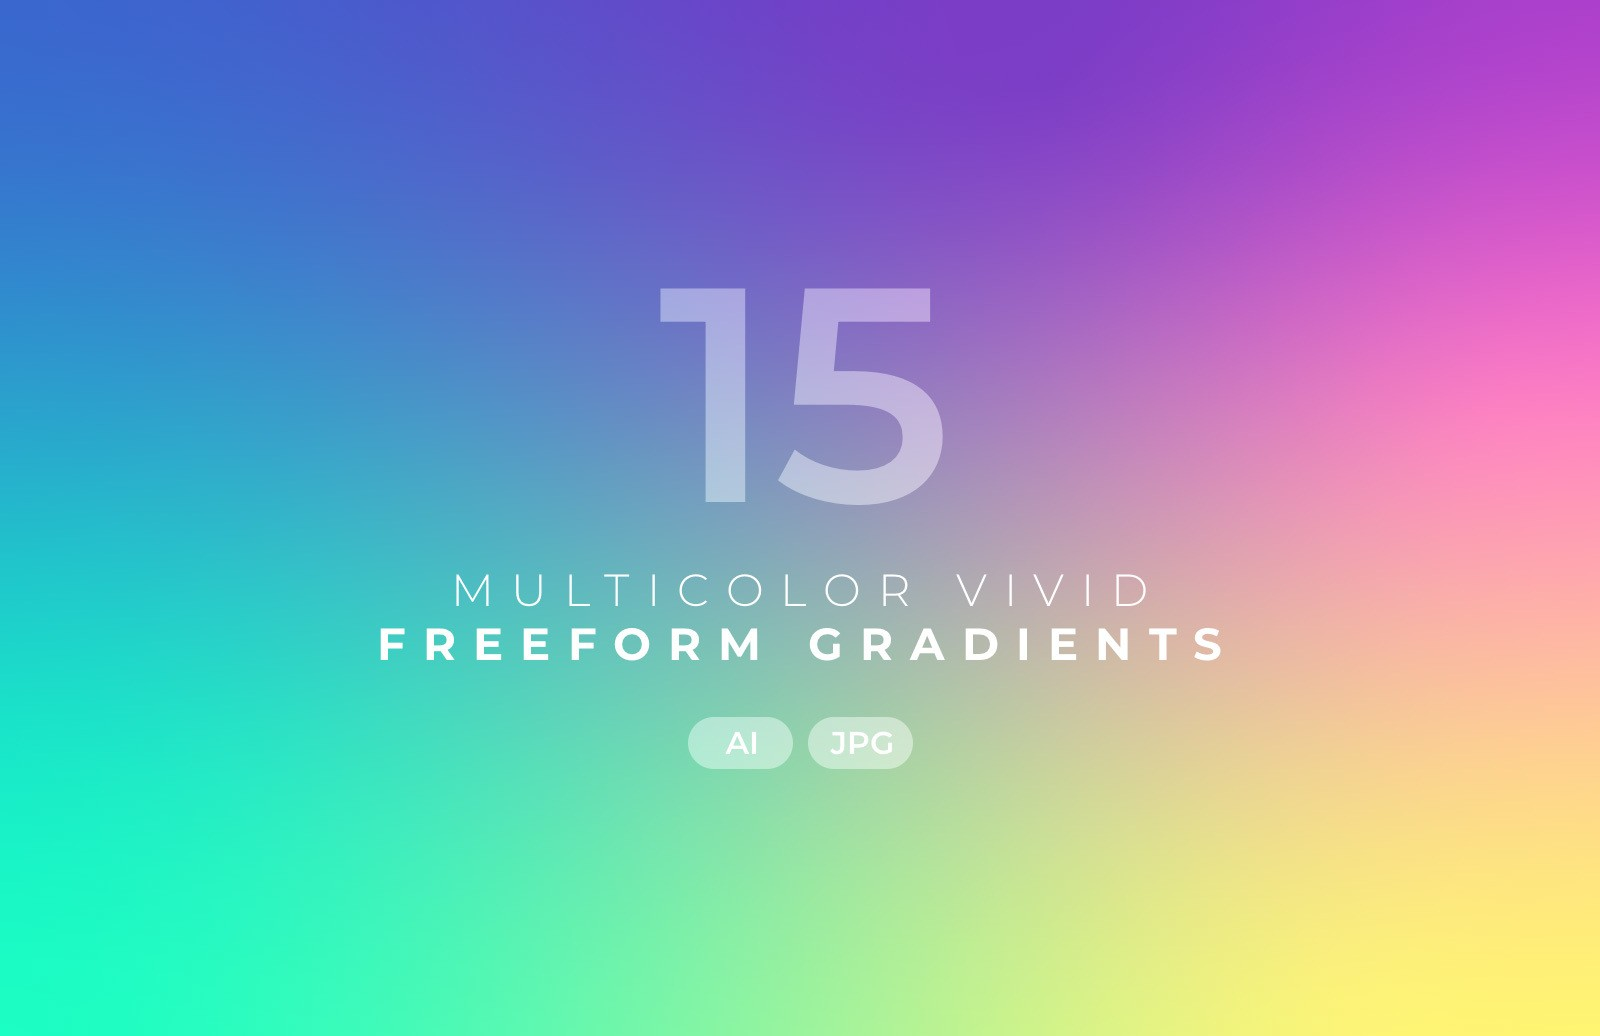 Multicolor Vivid Freeform Gradients Preview 2